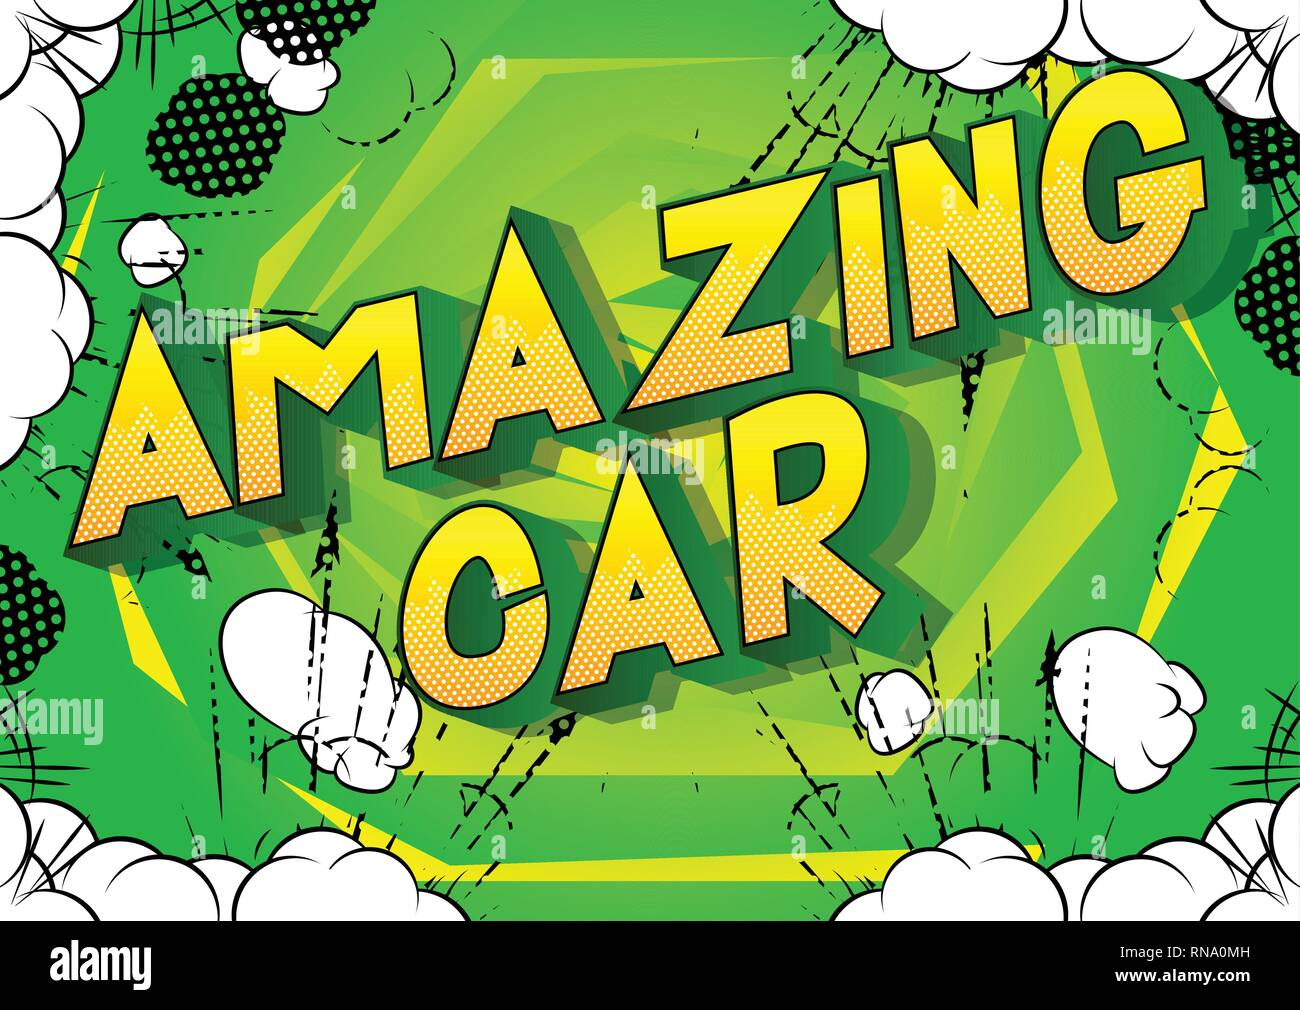 Amazing Car - Vector illustrated comic book style phrase on abstract background. - Stock Image